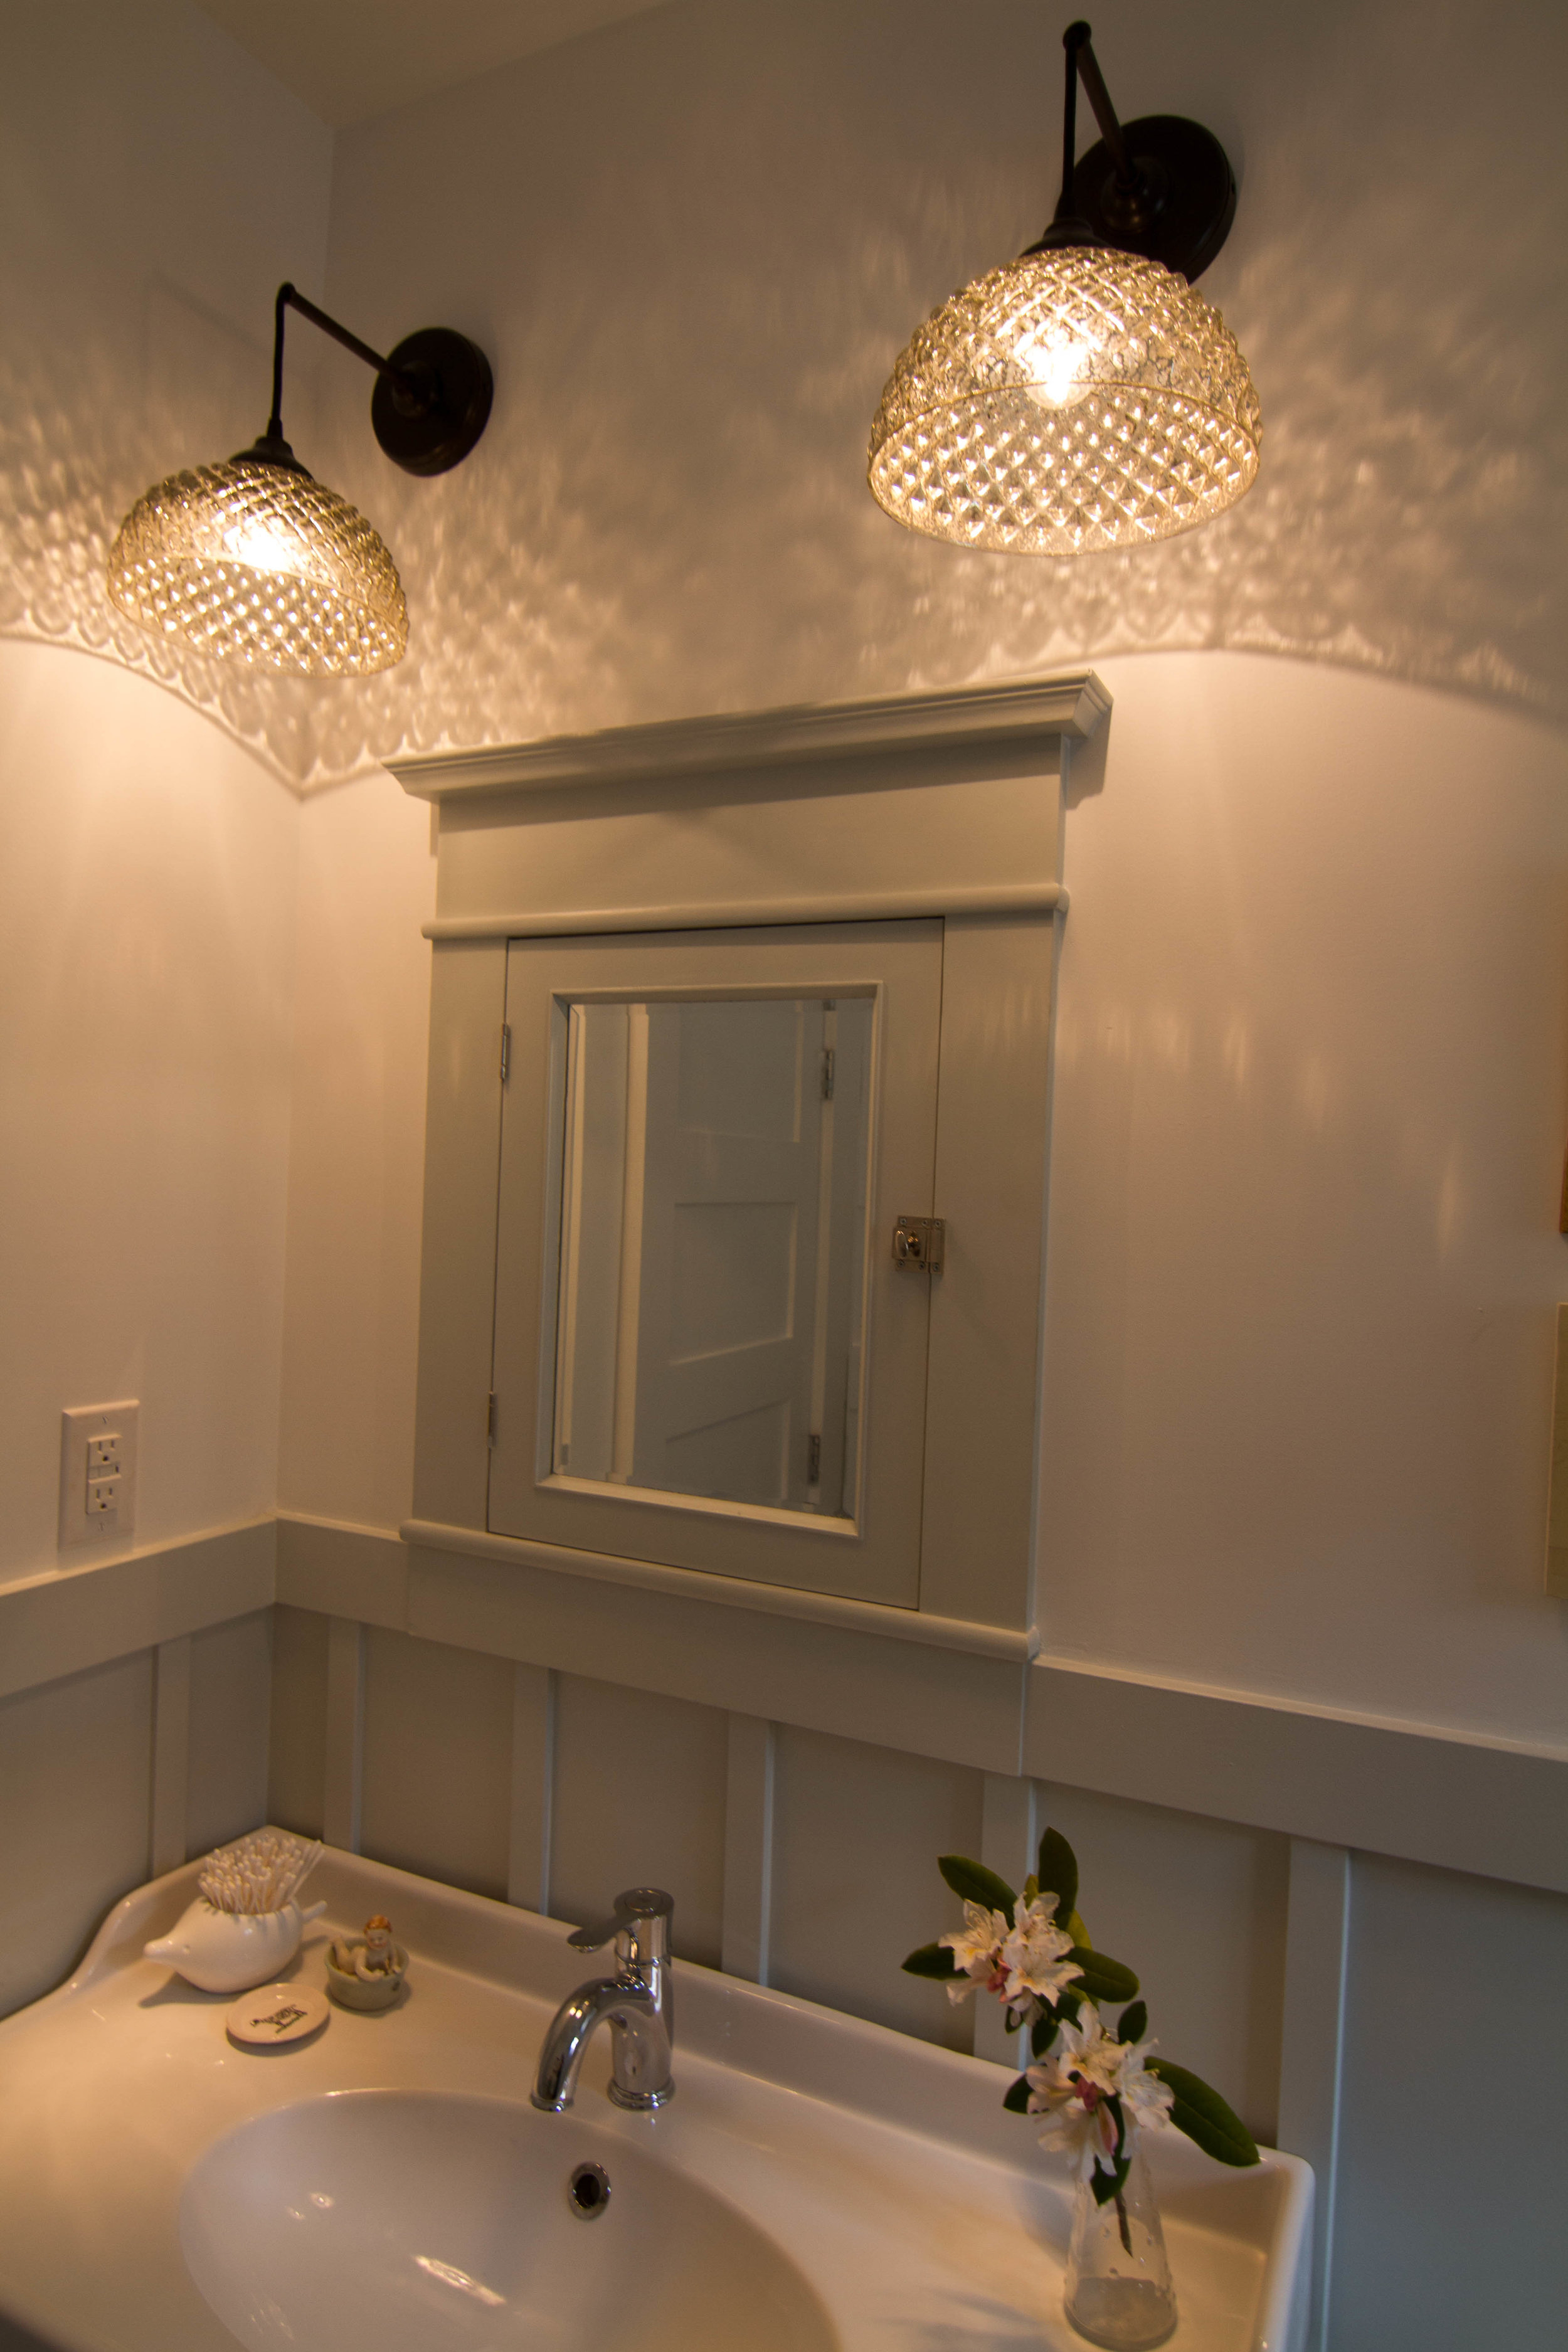 Bath-Remodel-lights-1-of-1.jpg